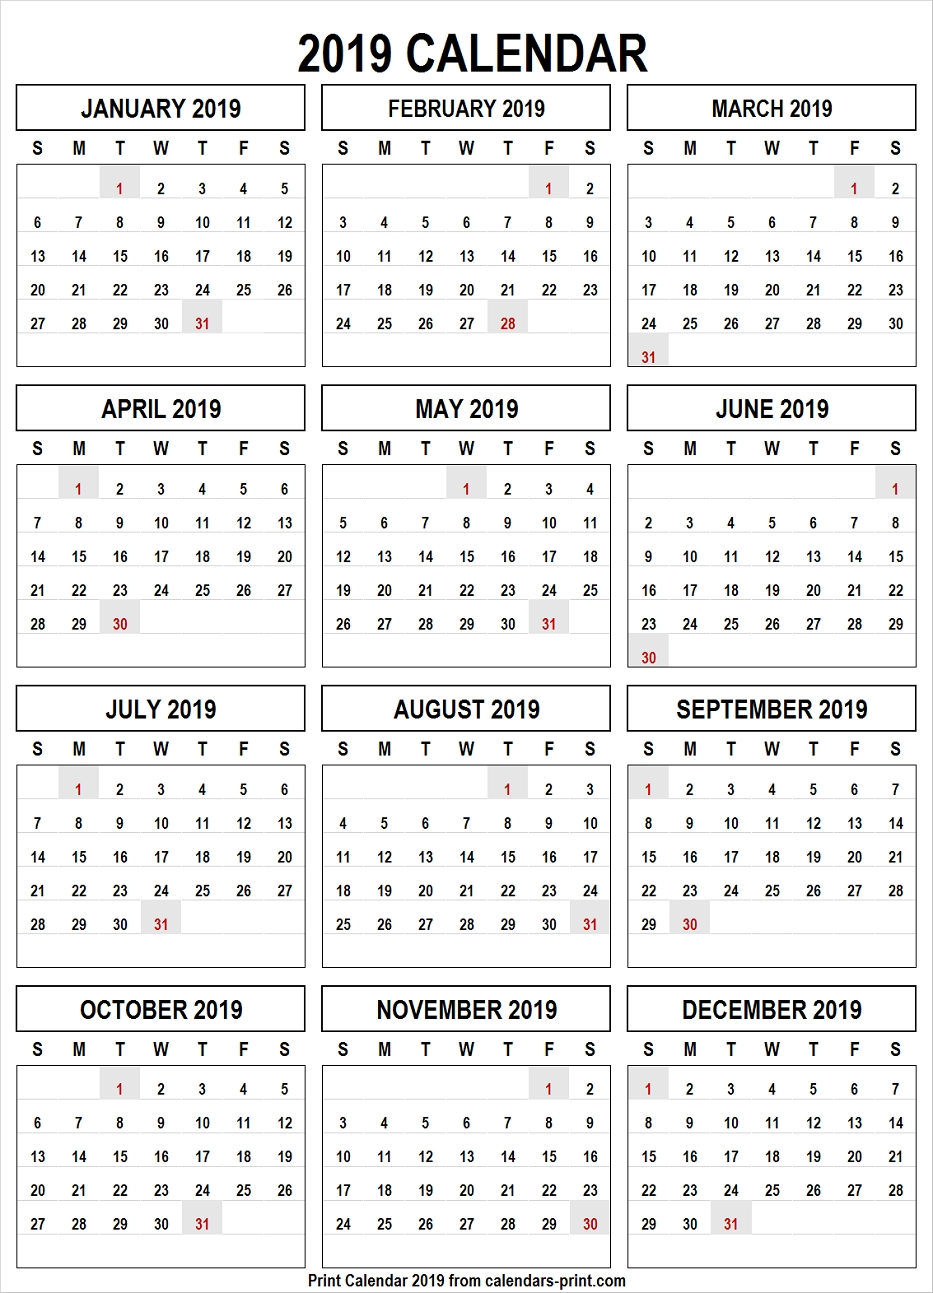 Calendar 2019 Png Free Download Template With Notes | Holidays Calendar 2019 Png